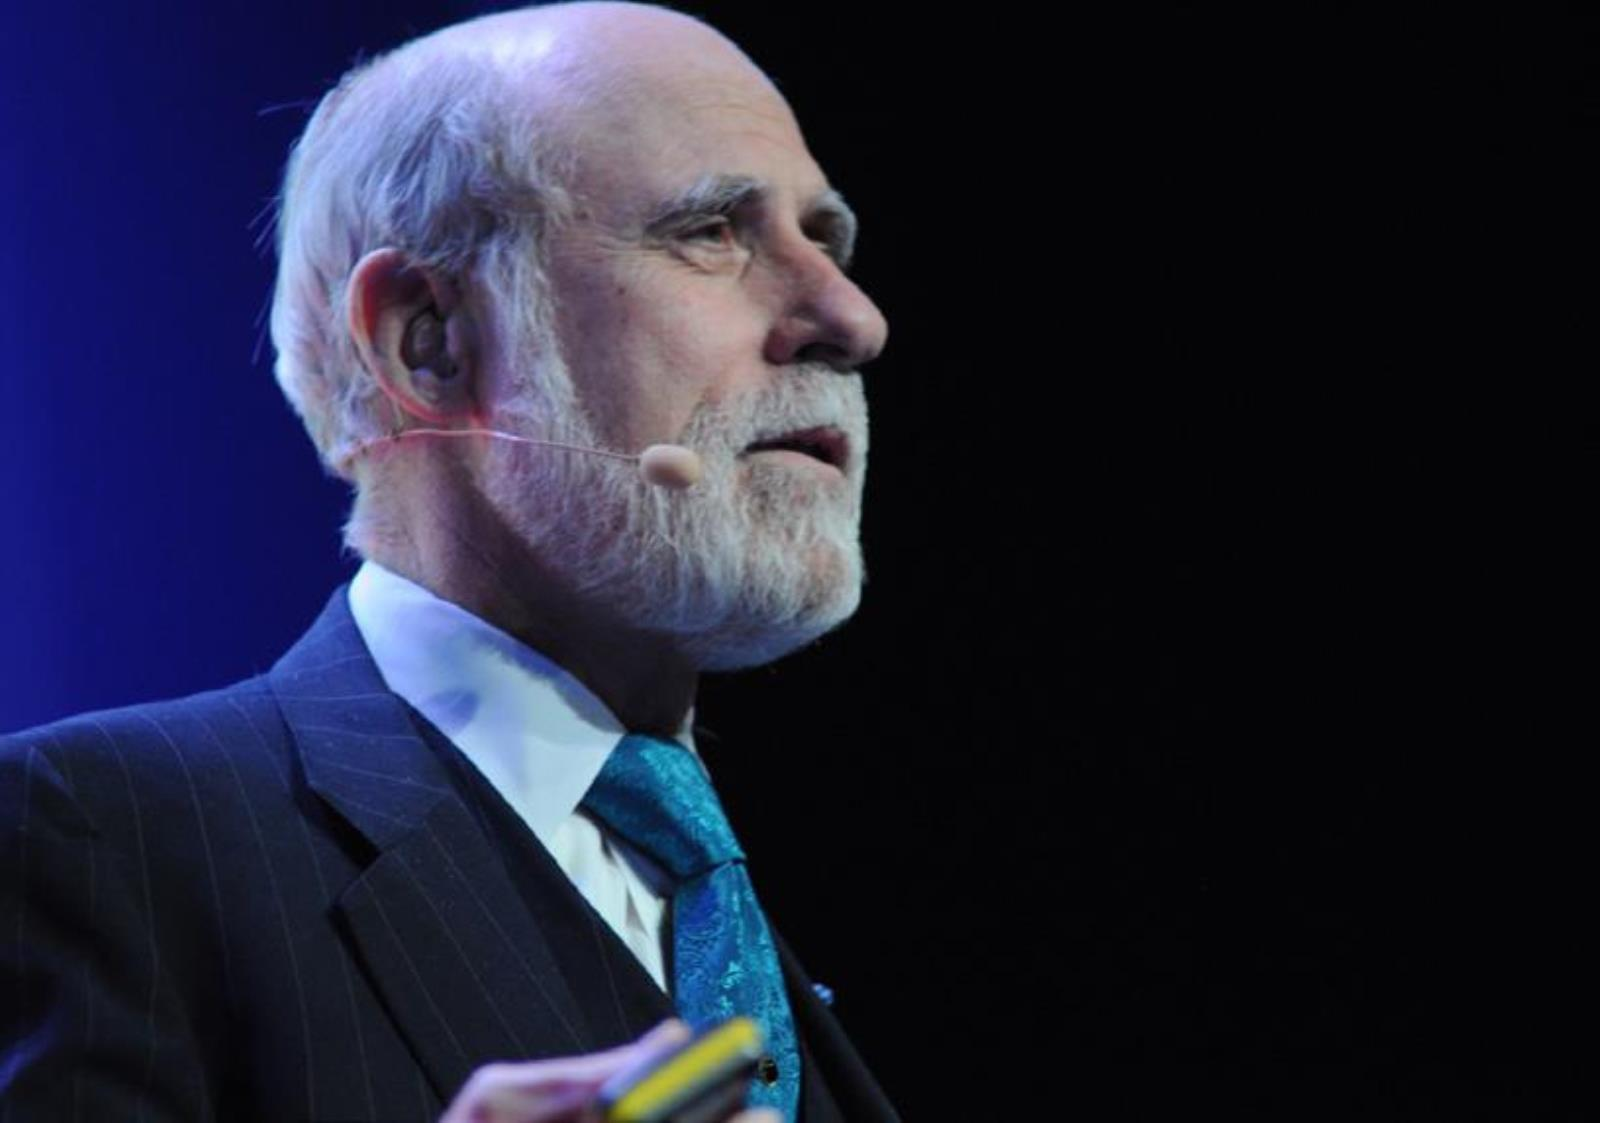 Annual Lecture and Dinner - 'Future of Text' given by Dr Vint Cerf, the Father of the Internet